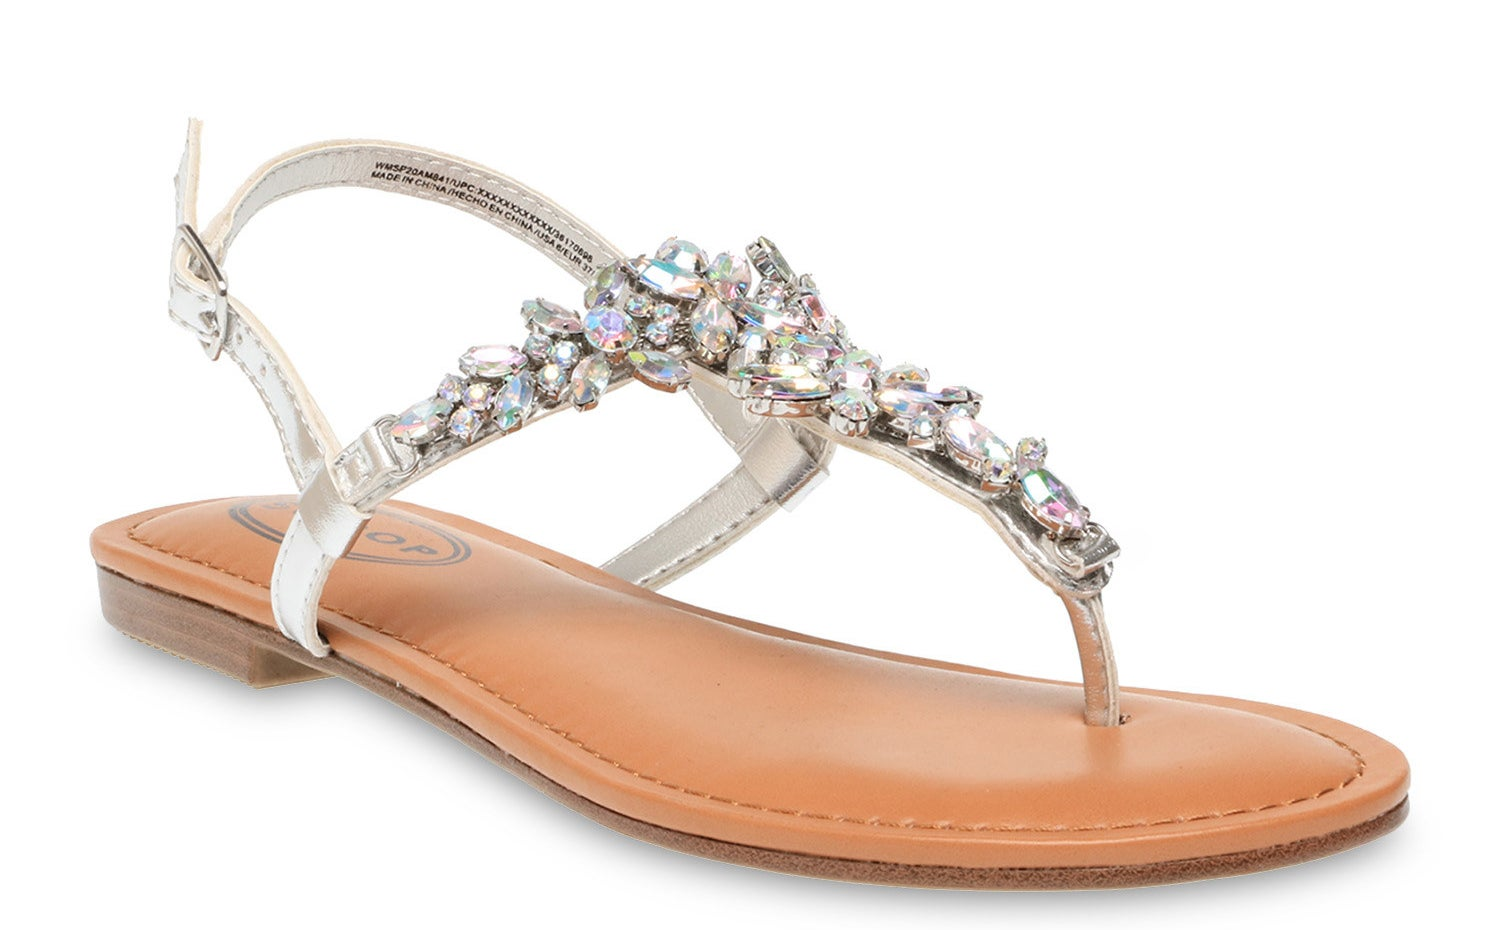 The silver jeweled sandal